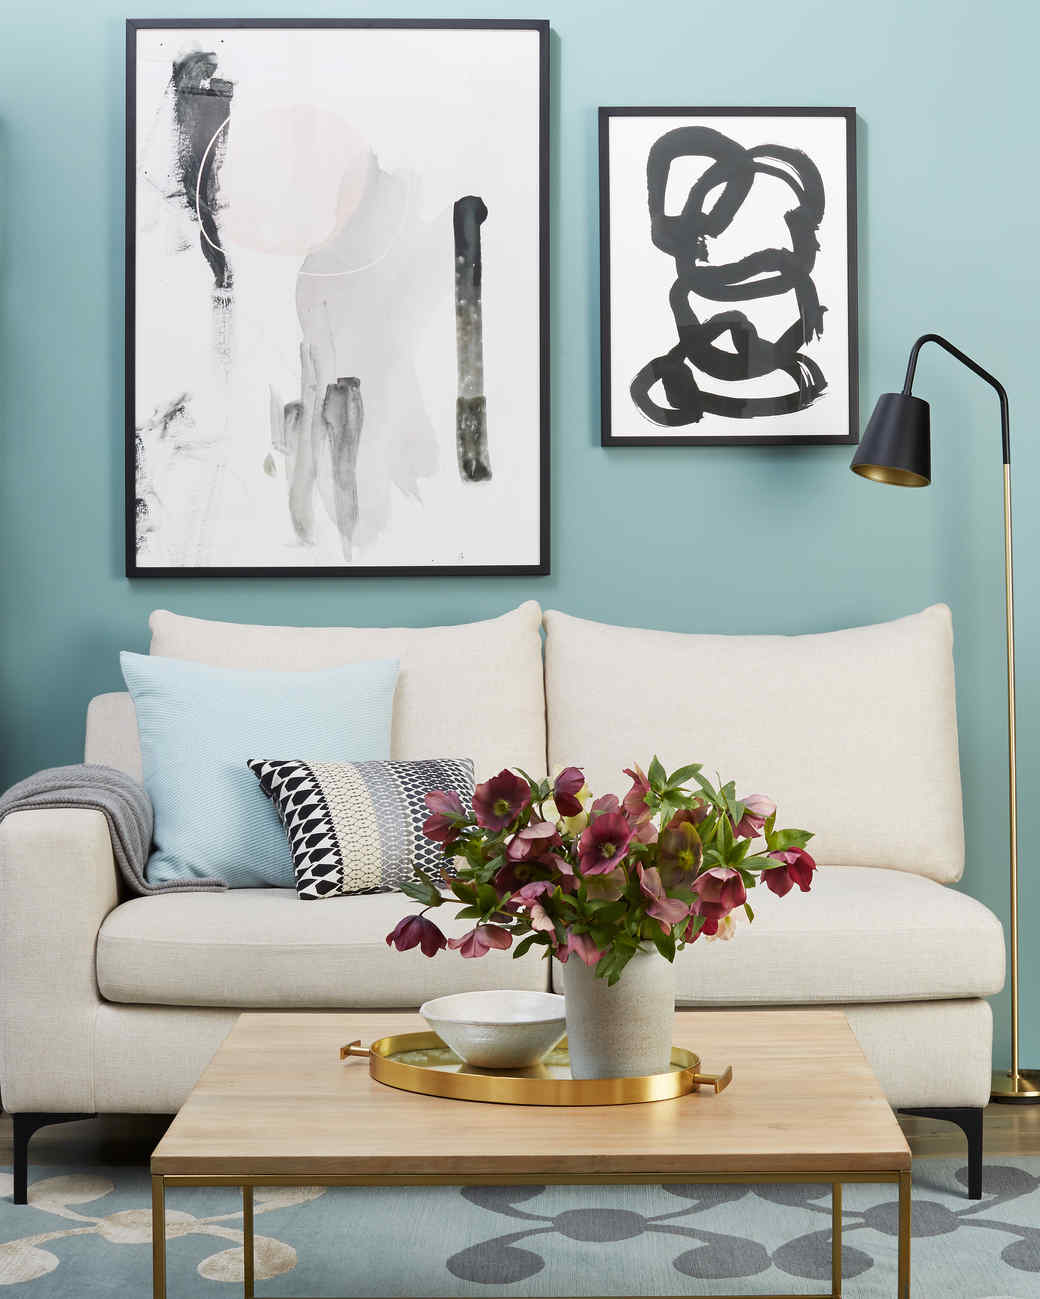 See How Paint Dramatically Transforms This Living Room | Martha Stewart